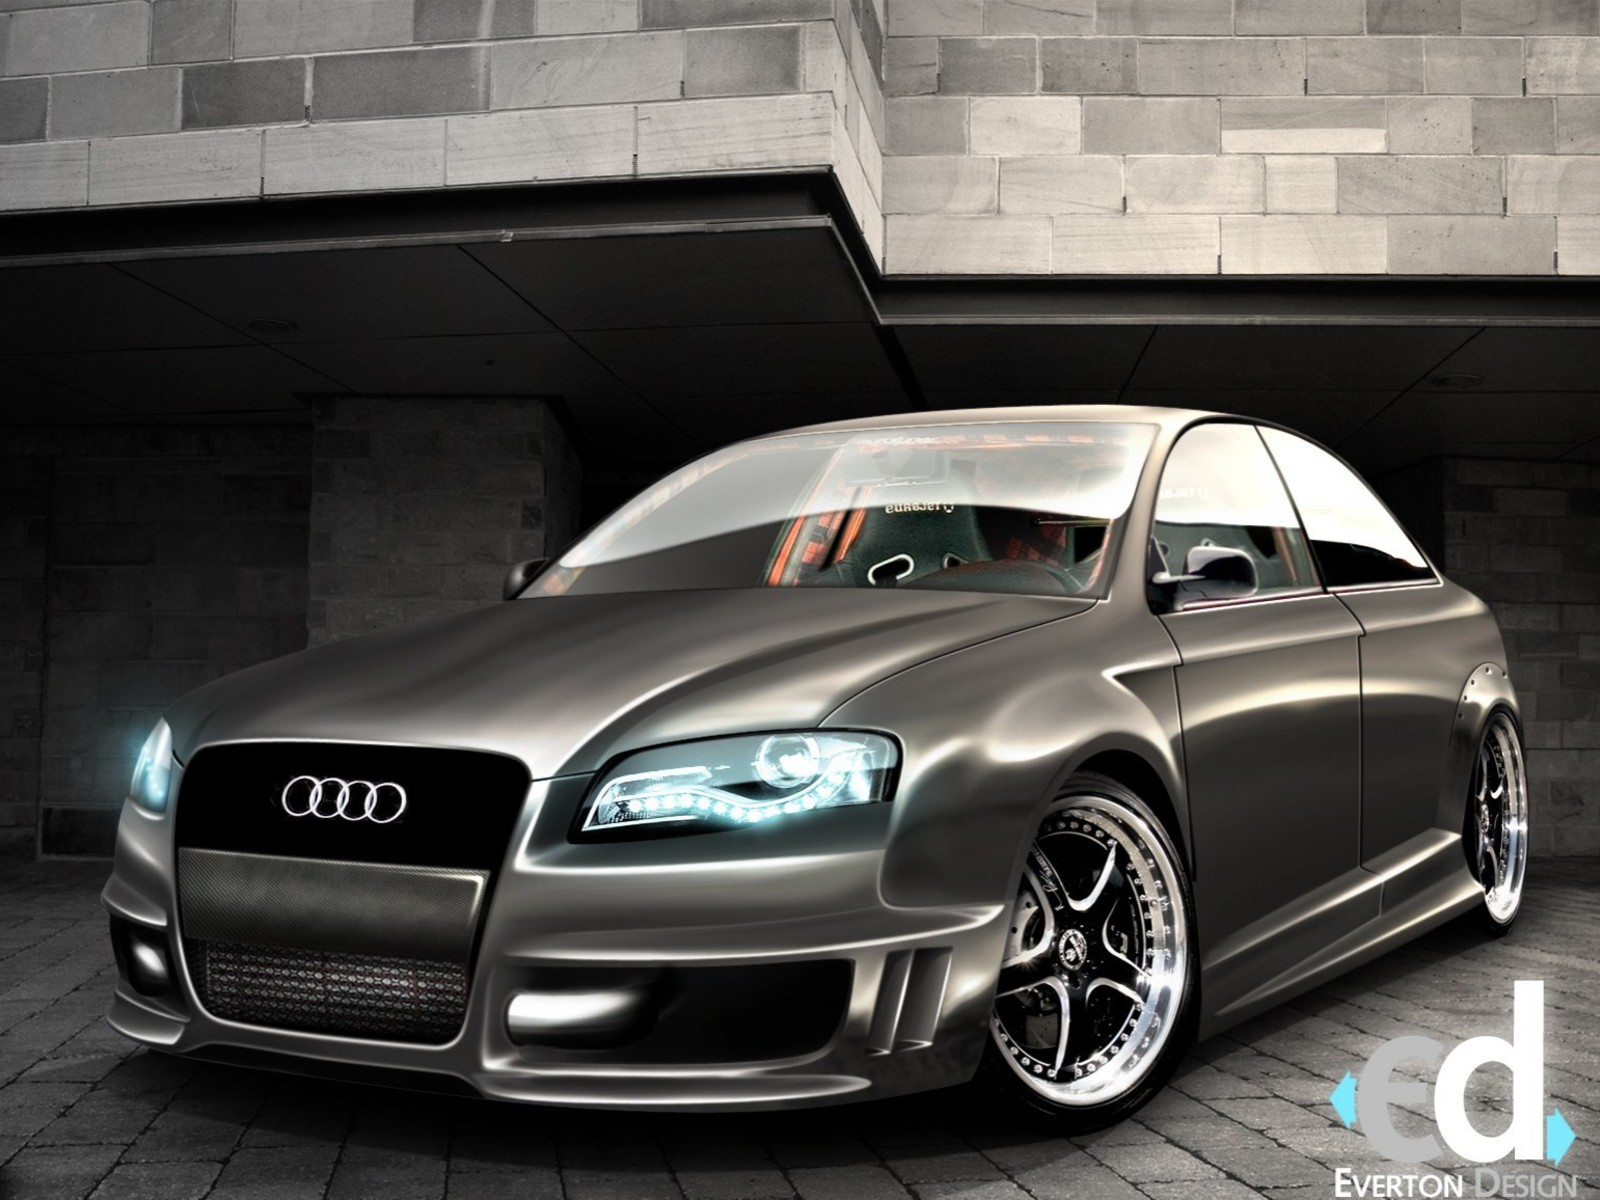 Cars Audi Tuning D Wallpaper AllWallpaperin PC En - Audi car 3d